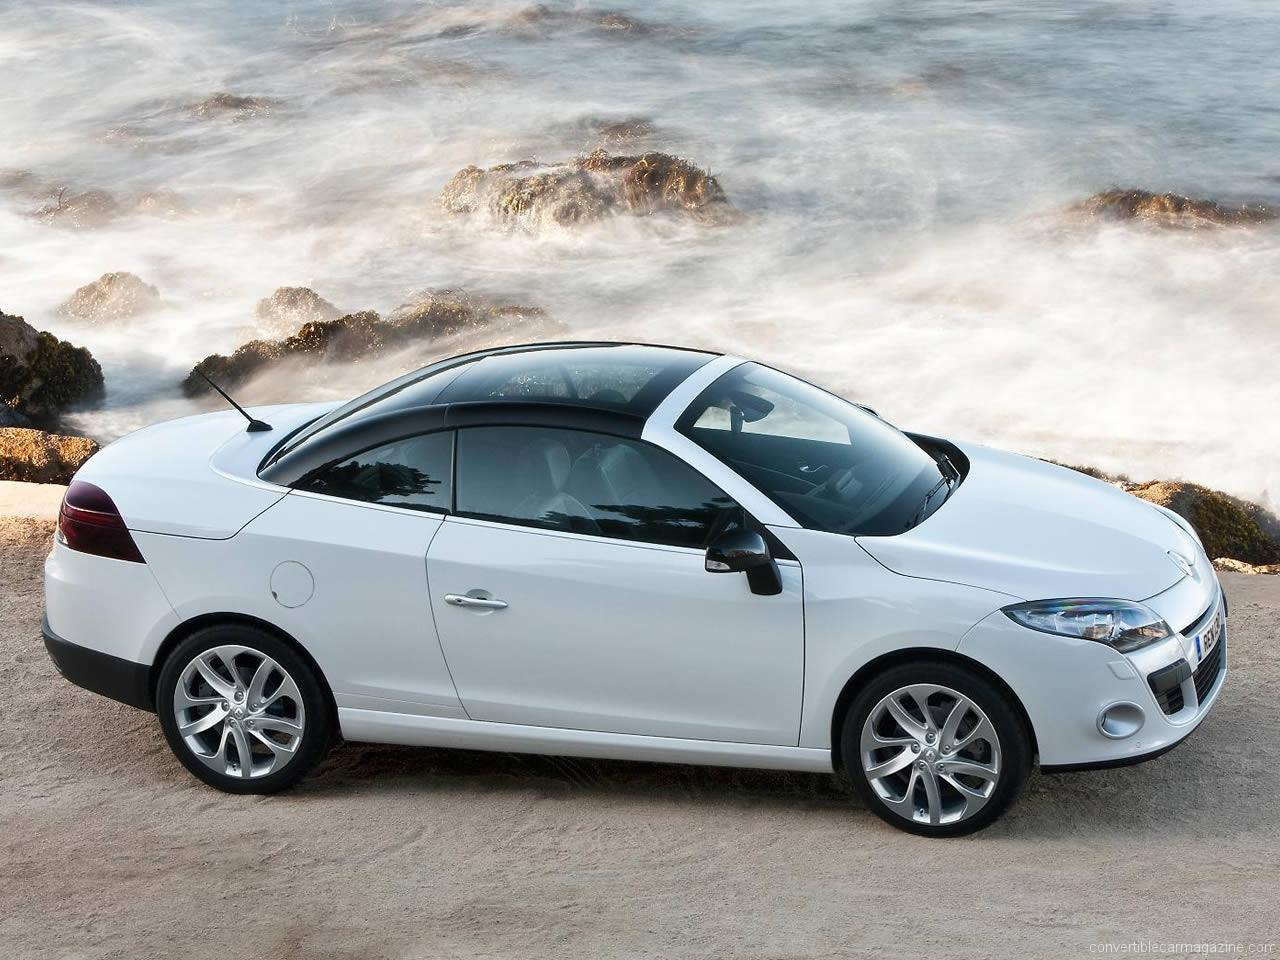 Pictures of renault megane iii cc 2013